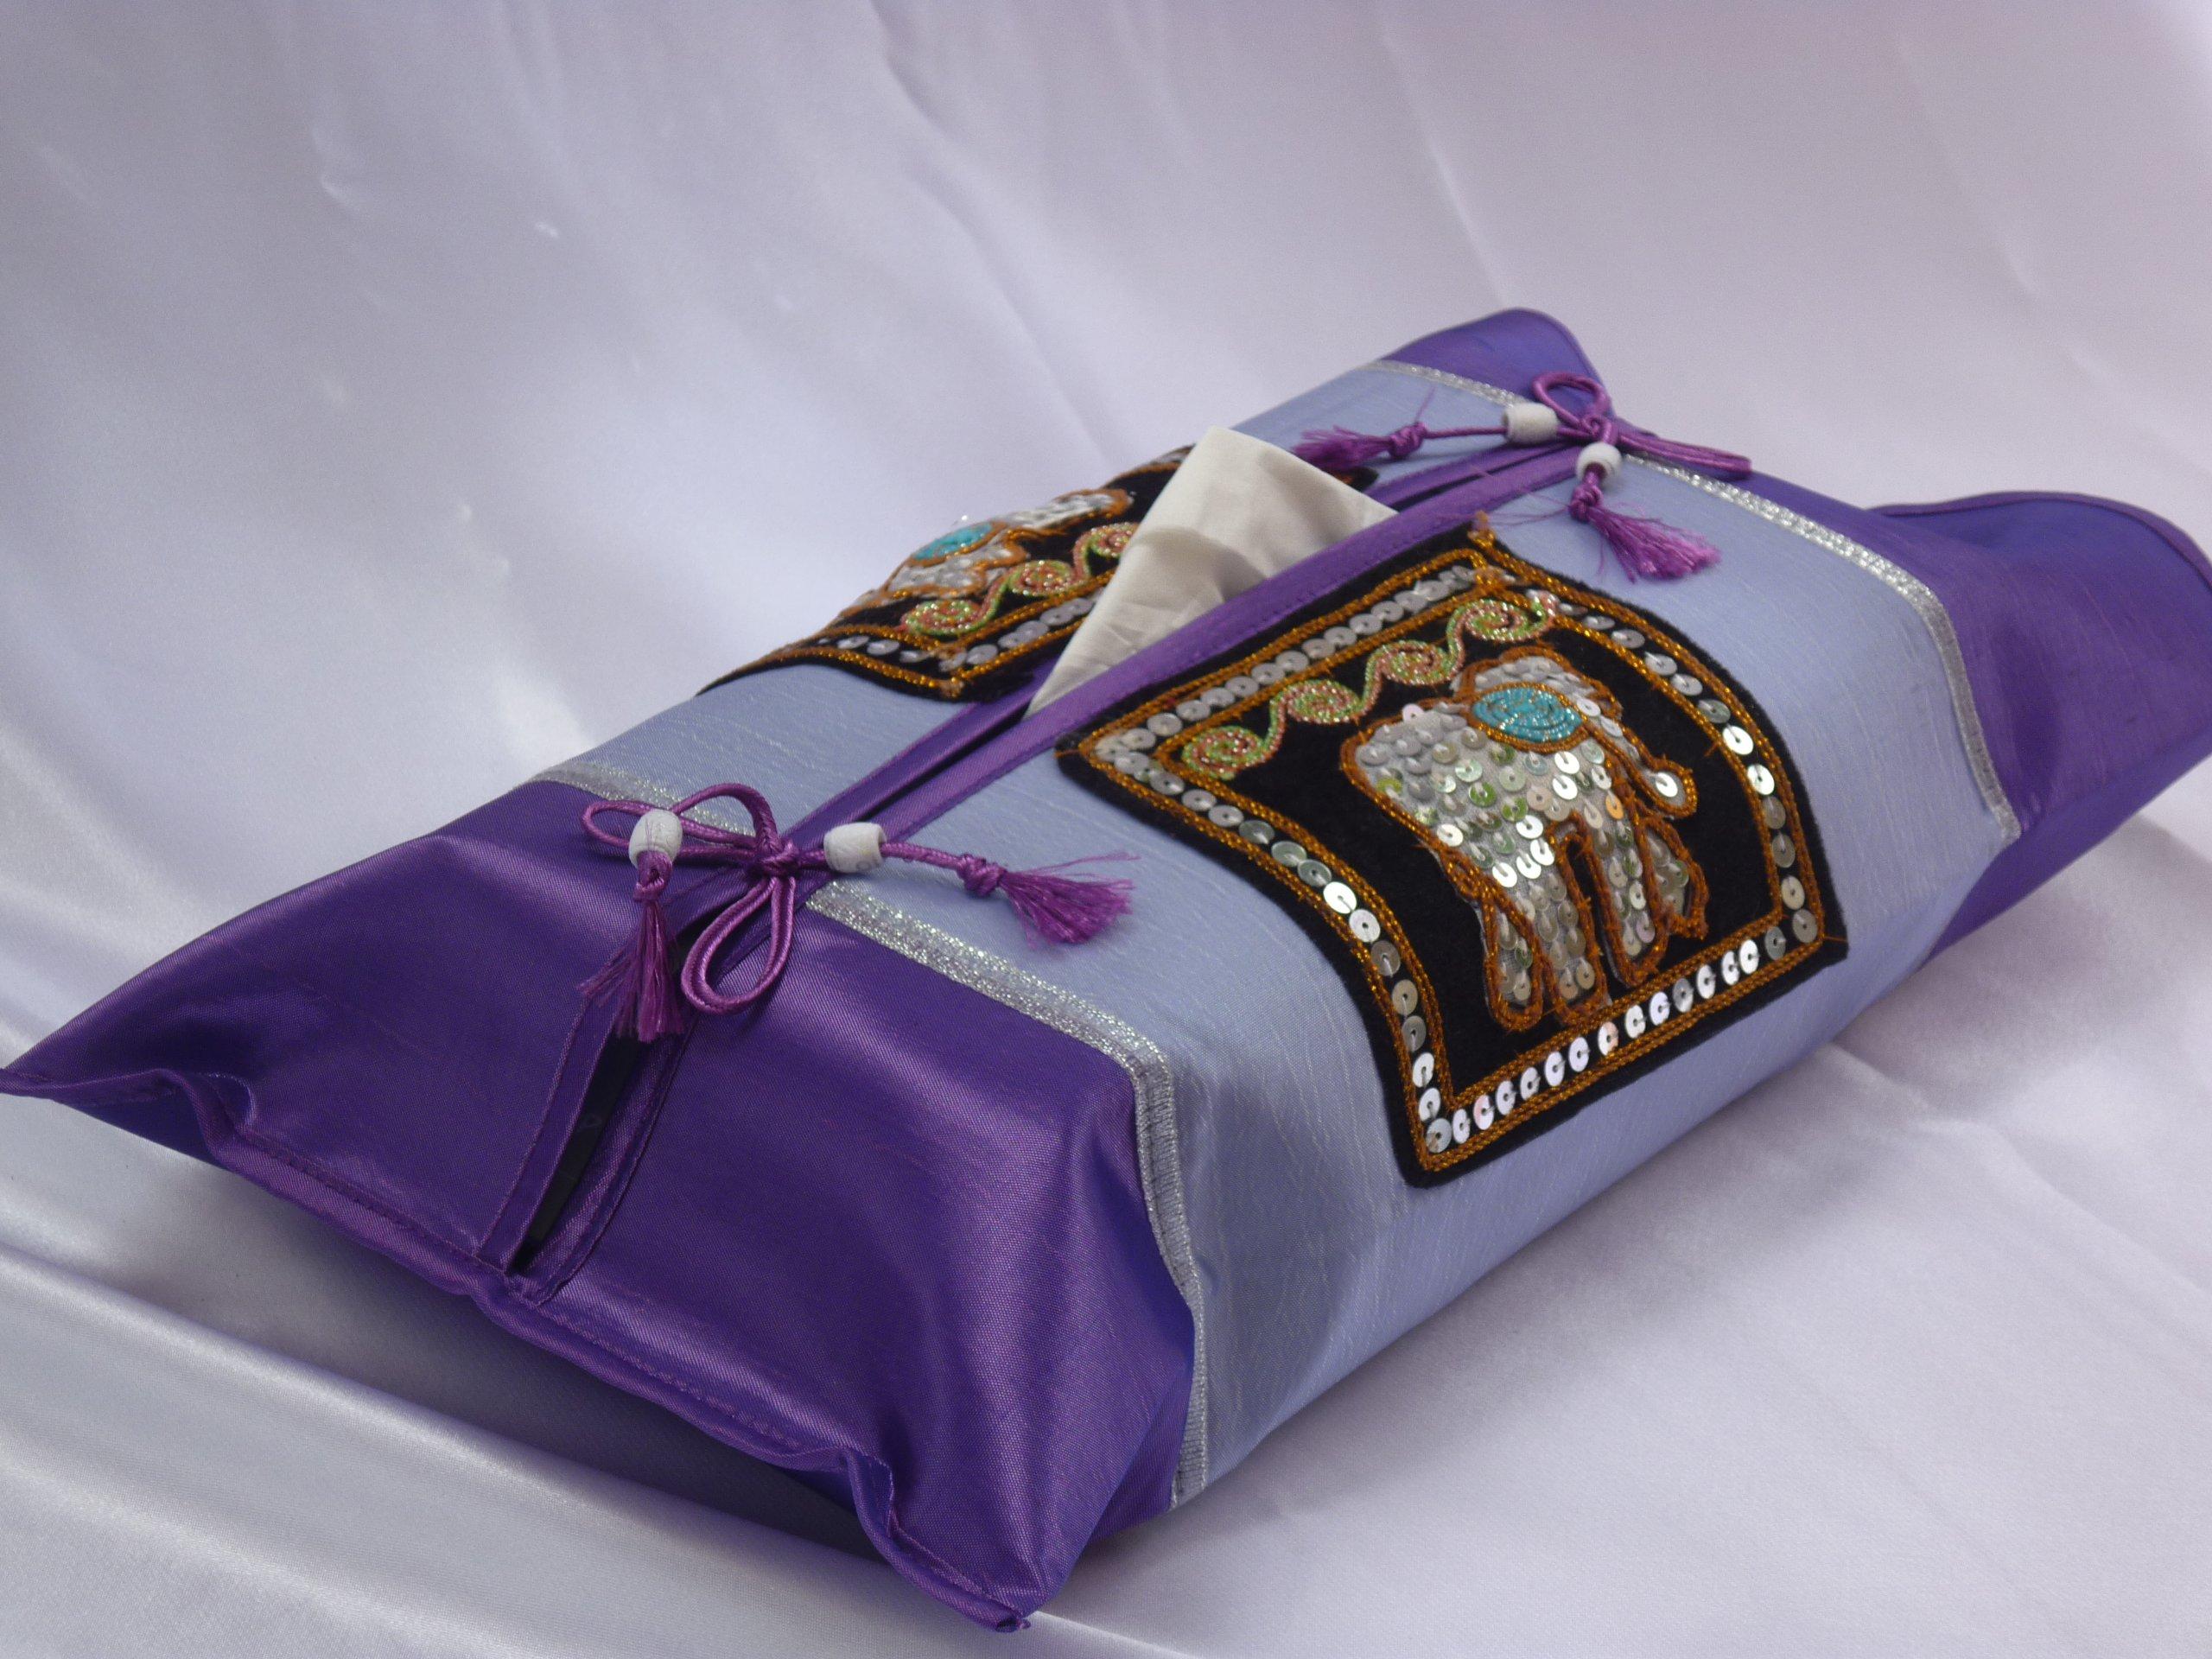 Birthday or Housewarming Christmas Gift Idea - Thai Silk Tissue Box Cover Holder (Purple) with Elephant - Thai Silk/Standard Size by Aereeya